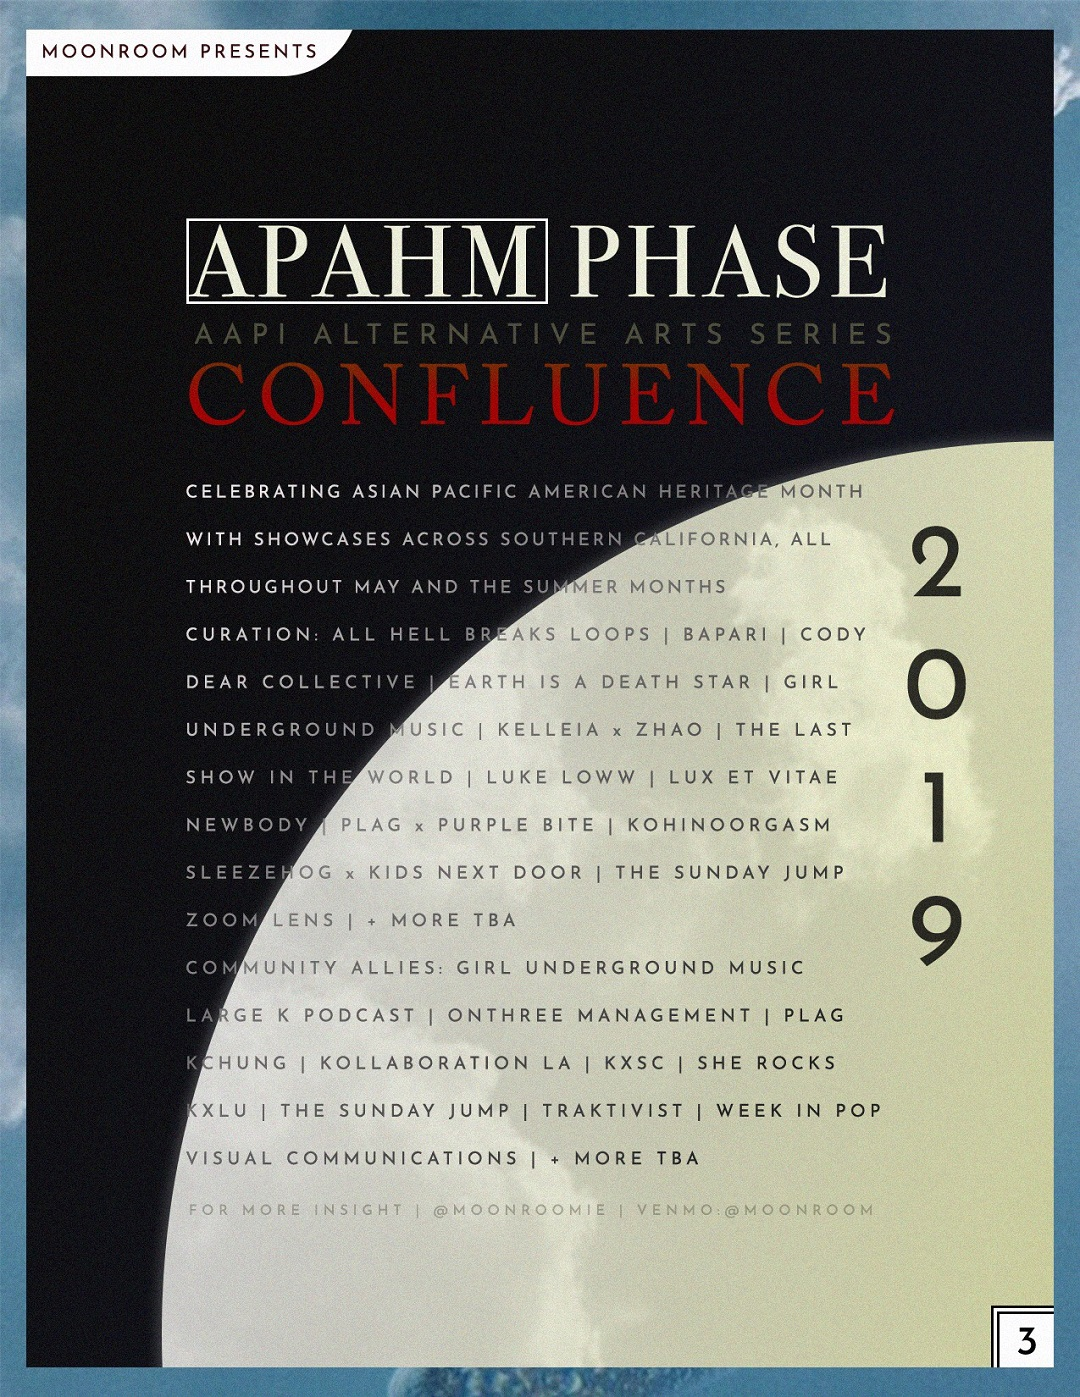 apham phase 2019 2 week in pop.jpg